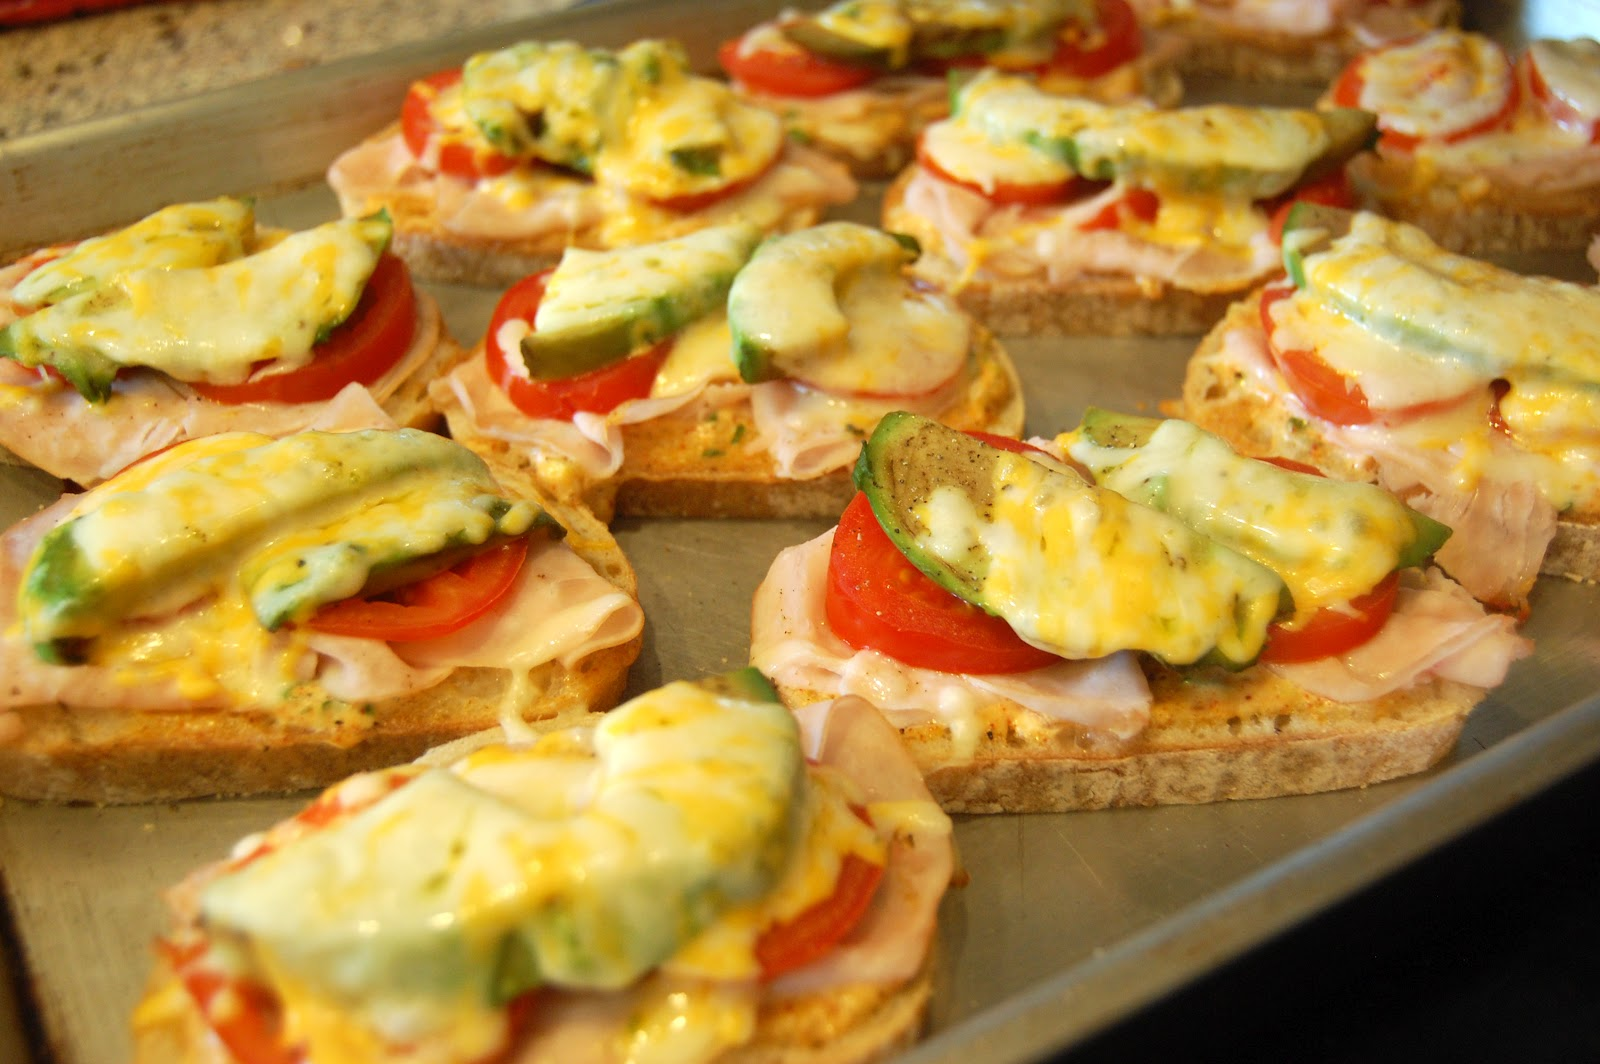 Emily Can Cook: South of the Border Open-Face Sandwiches